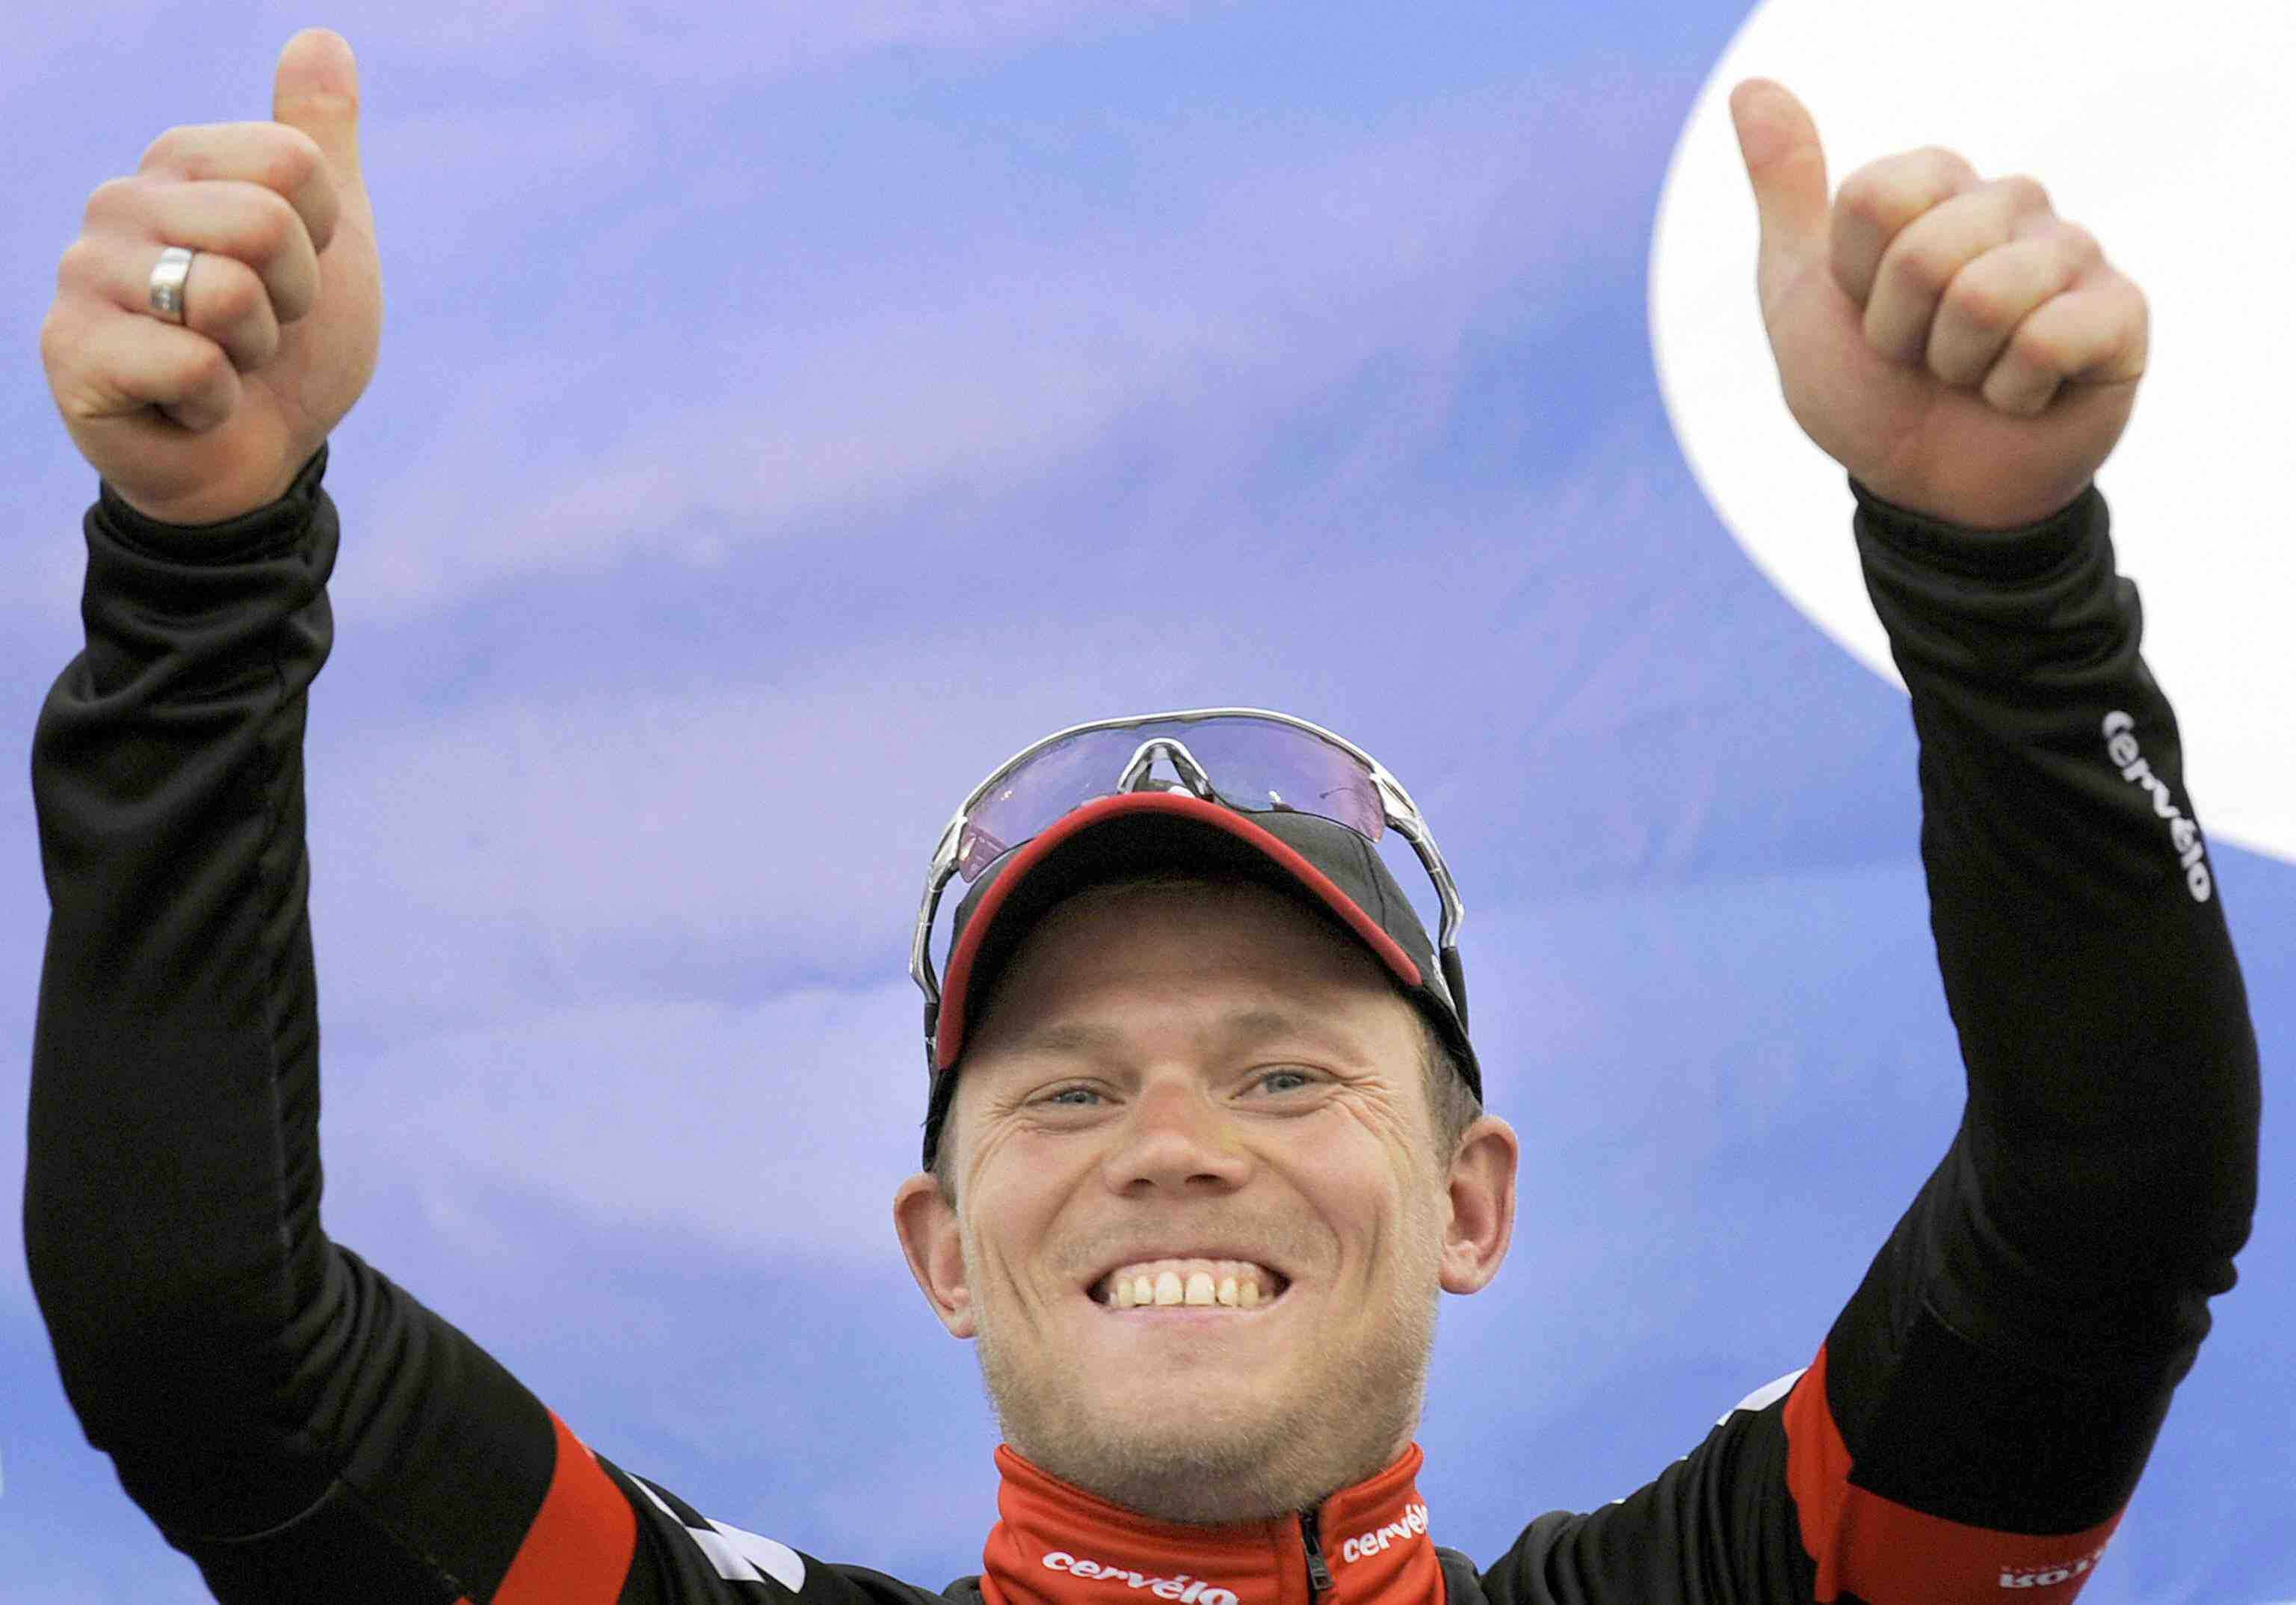 Norwegian cyclist Thor Hushovd of Team Cervelo celebrates on the podium after winning the Omloop Het Nieuwsblad road cycling race on February 28, 2009.